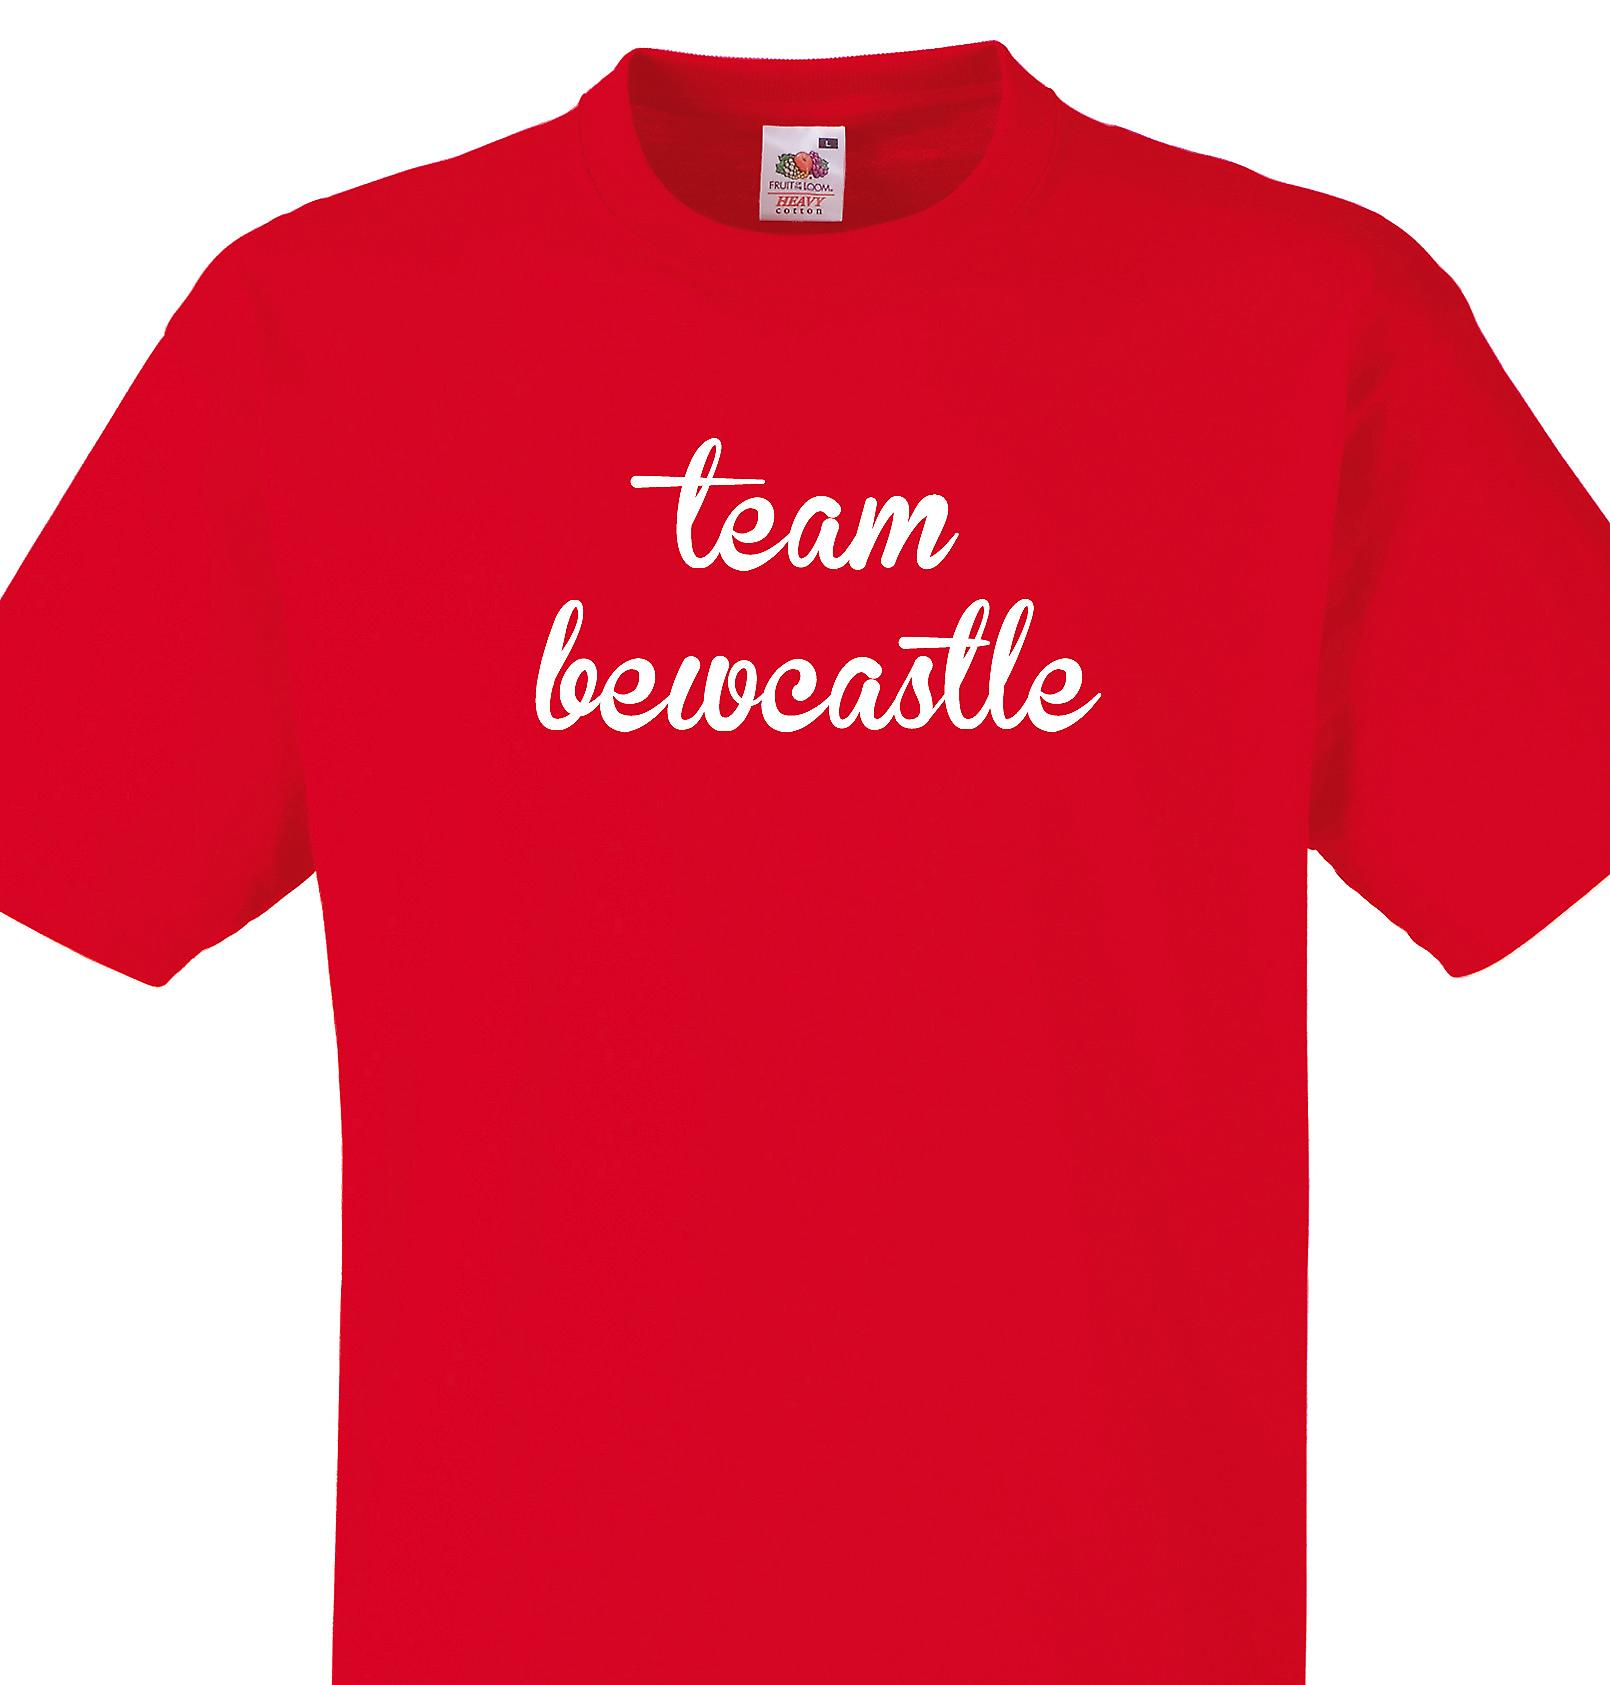 Team Bewcastle Red T shirt